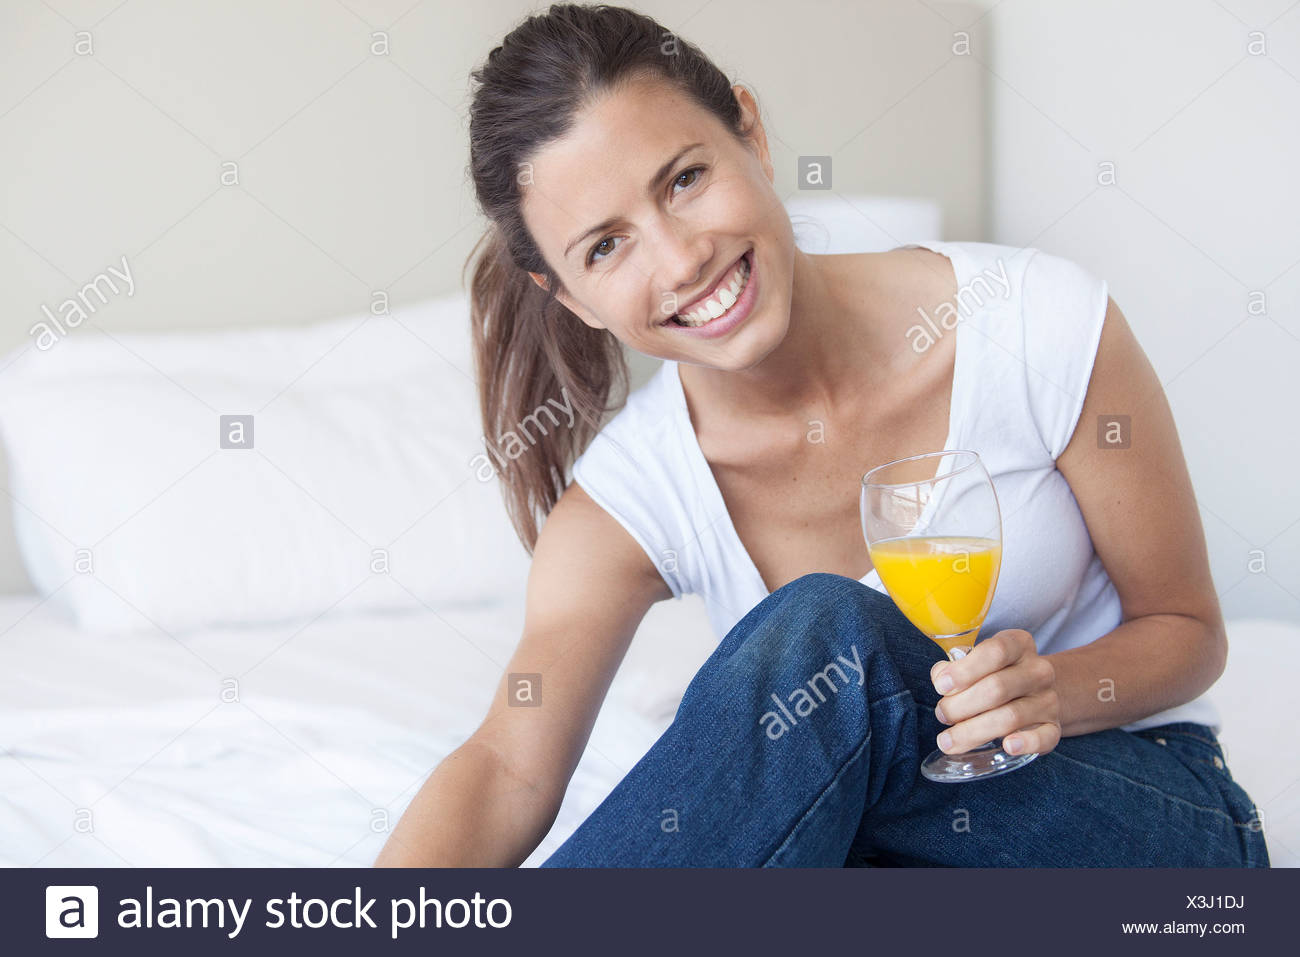 Young woman starting her day with glass of orange juice - Stock Image